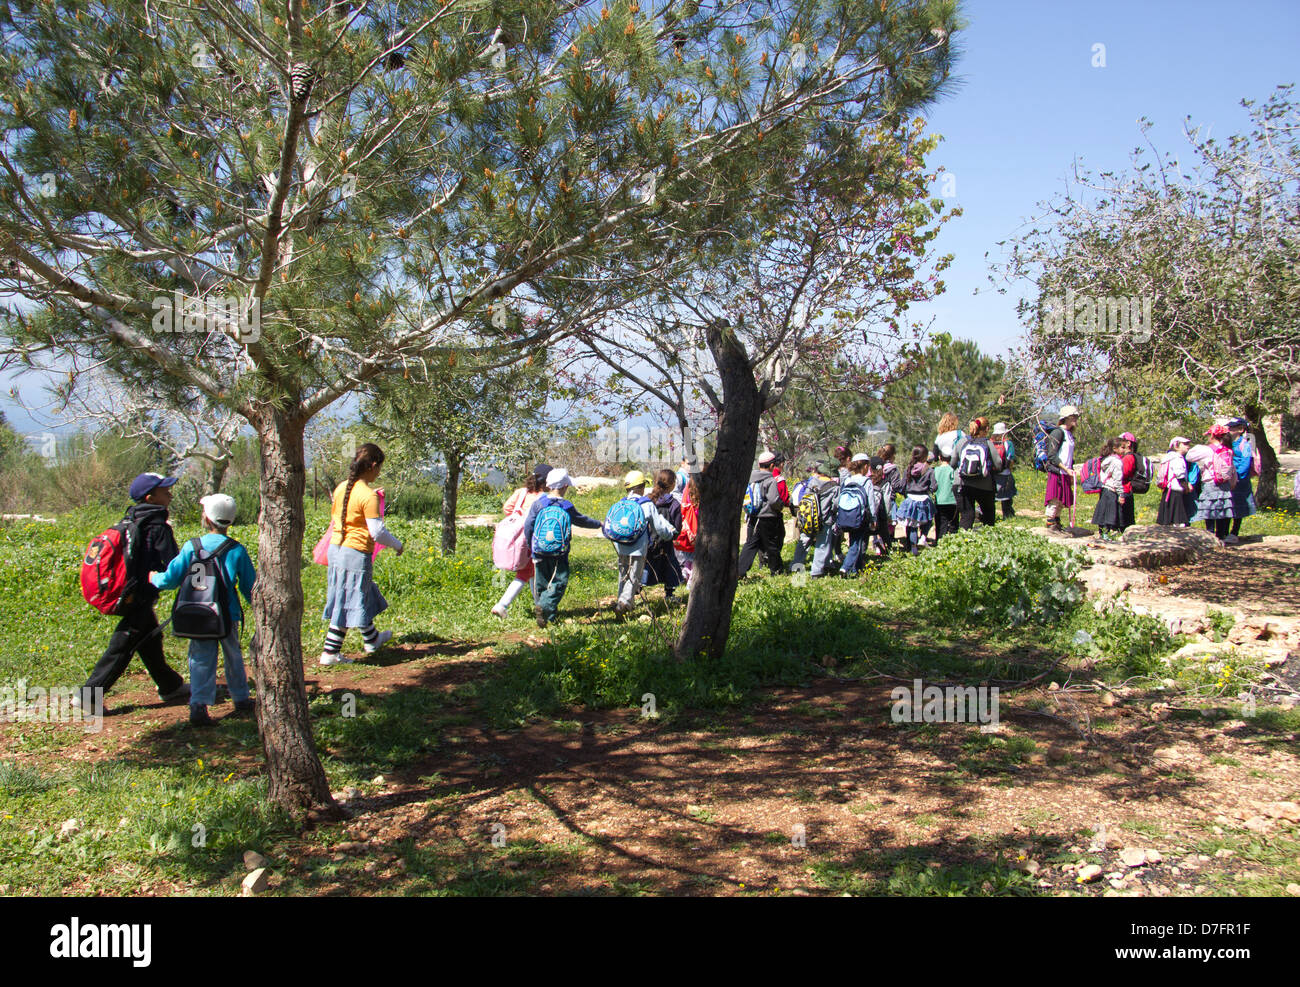 Primary School pupils visit Adamit Park in the Upper galilee, Israel - Stock Image